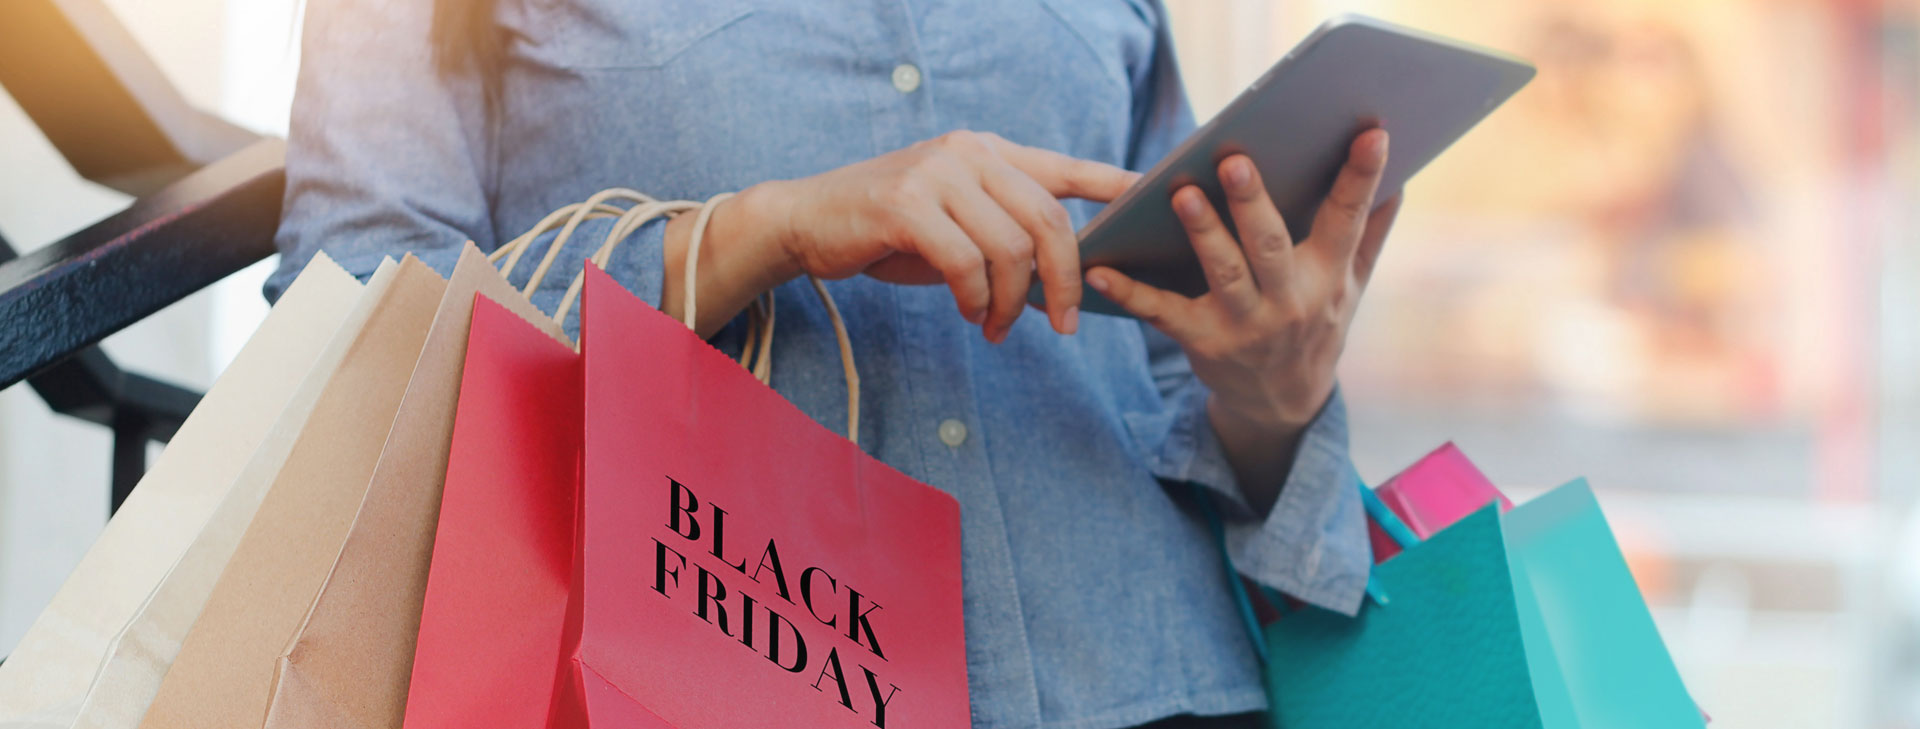 Black Friday 2018: 7 datos curiosos que te interesan, Oney blog,